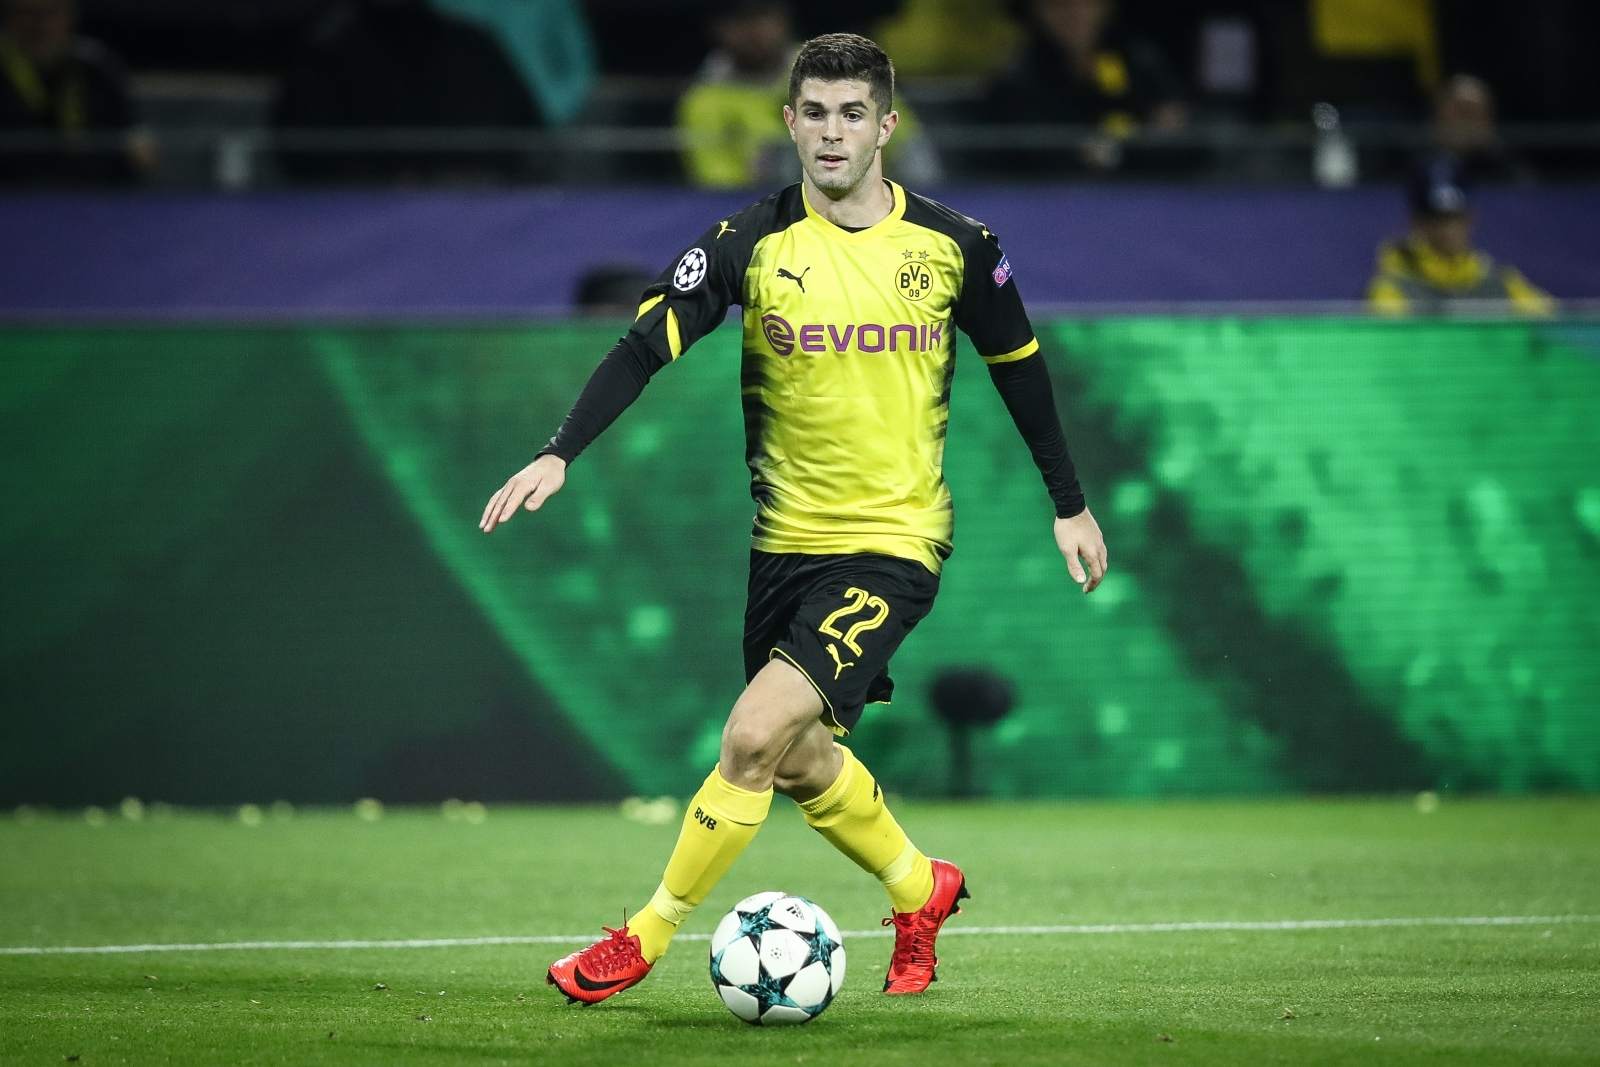 Borussia Dortmund star Christian Pulisic emerges as injury doubt for Tottenham clash